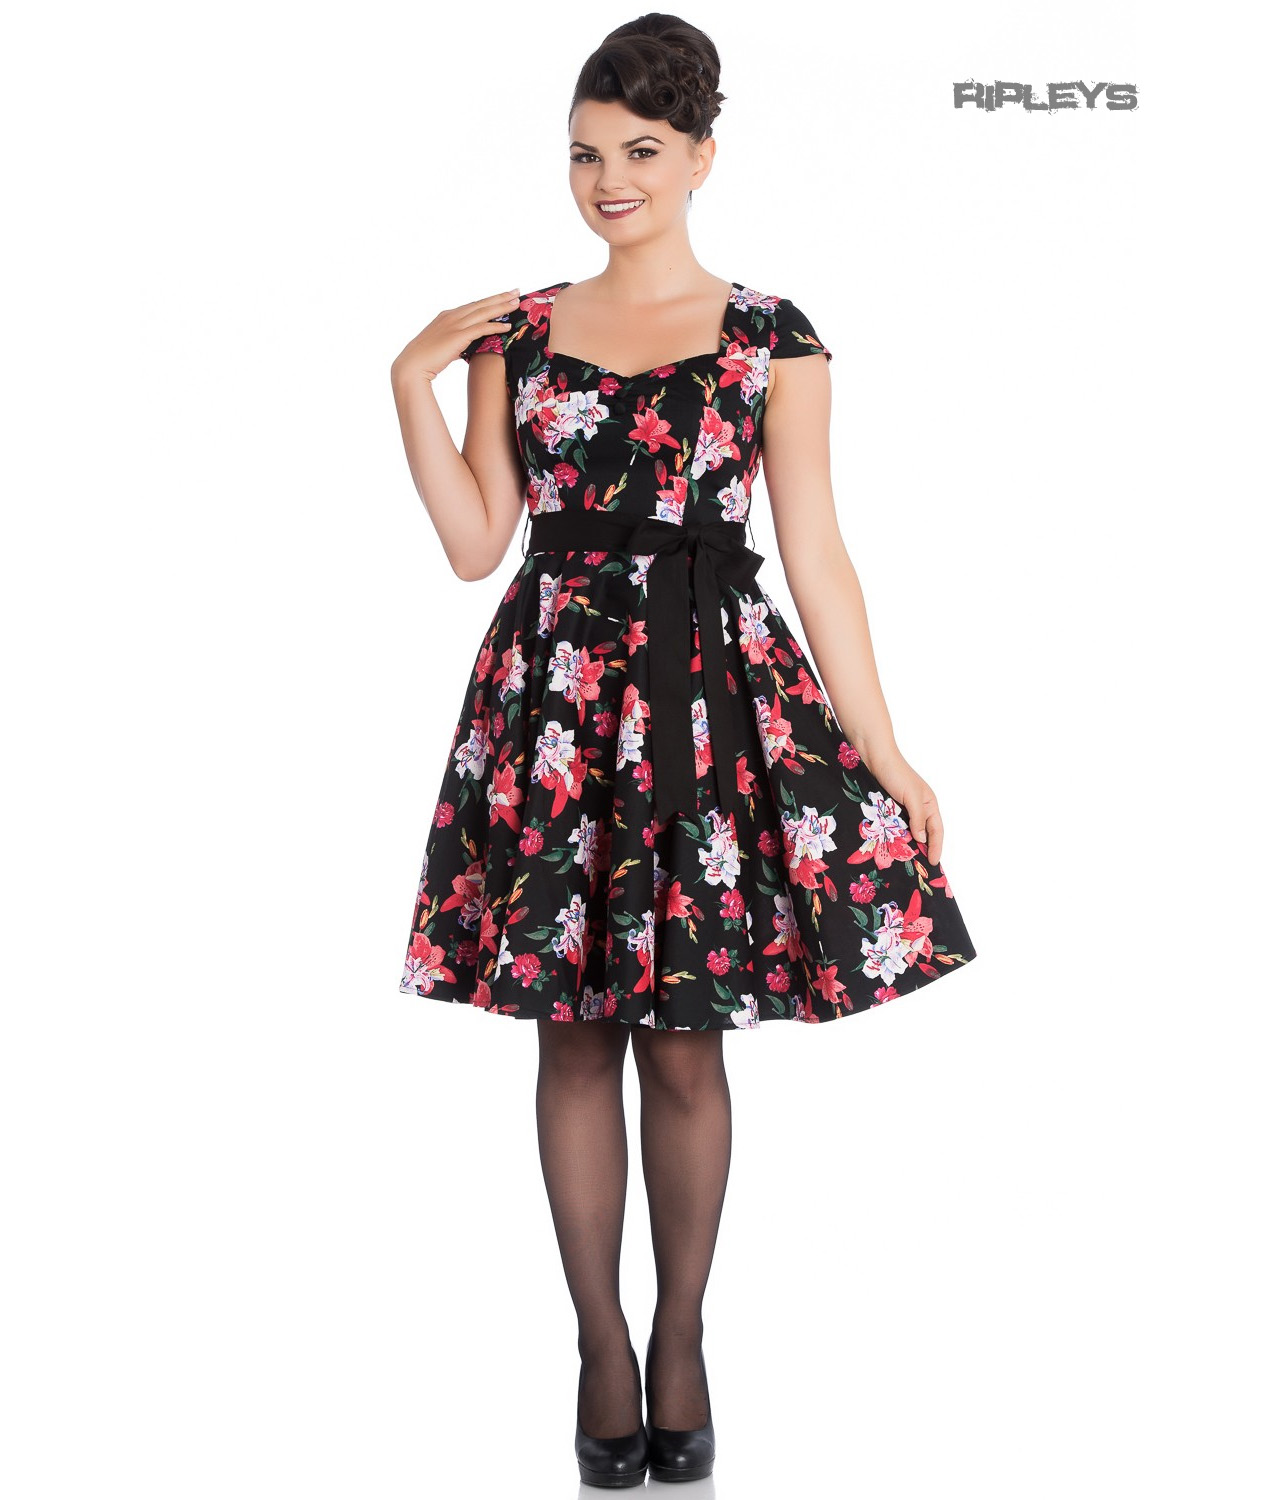 Hell-Bunny-Pin-Up-Mid-Length-50s-Dress-LILIANA-Lilly-Black-Flowers-Bow-All-Sizes thumbnail 6